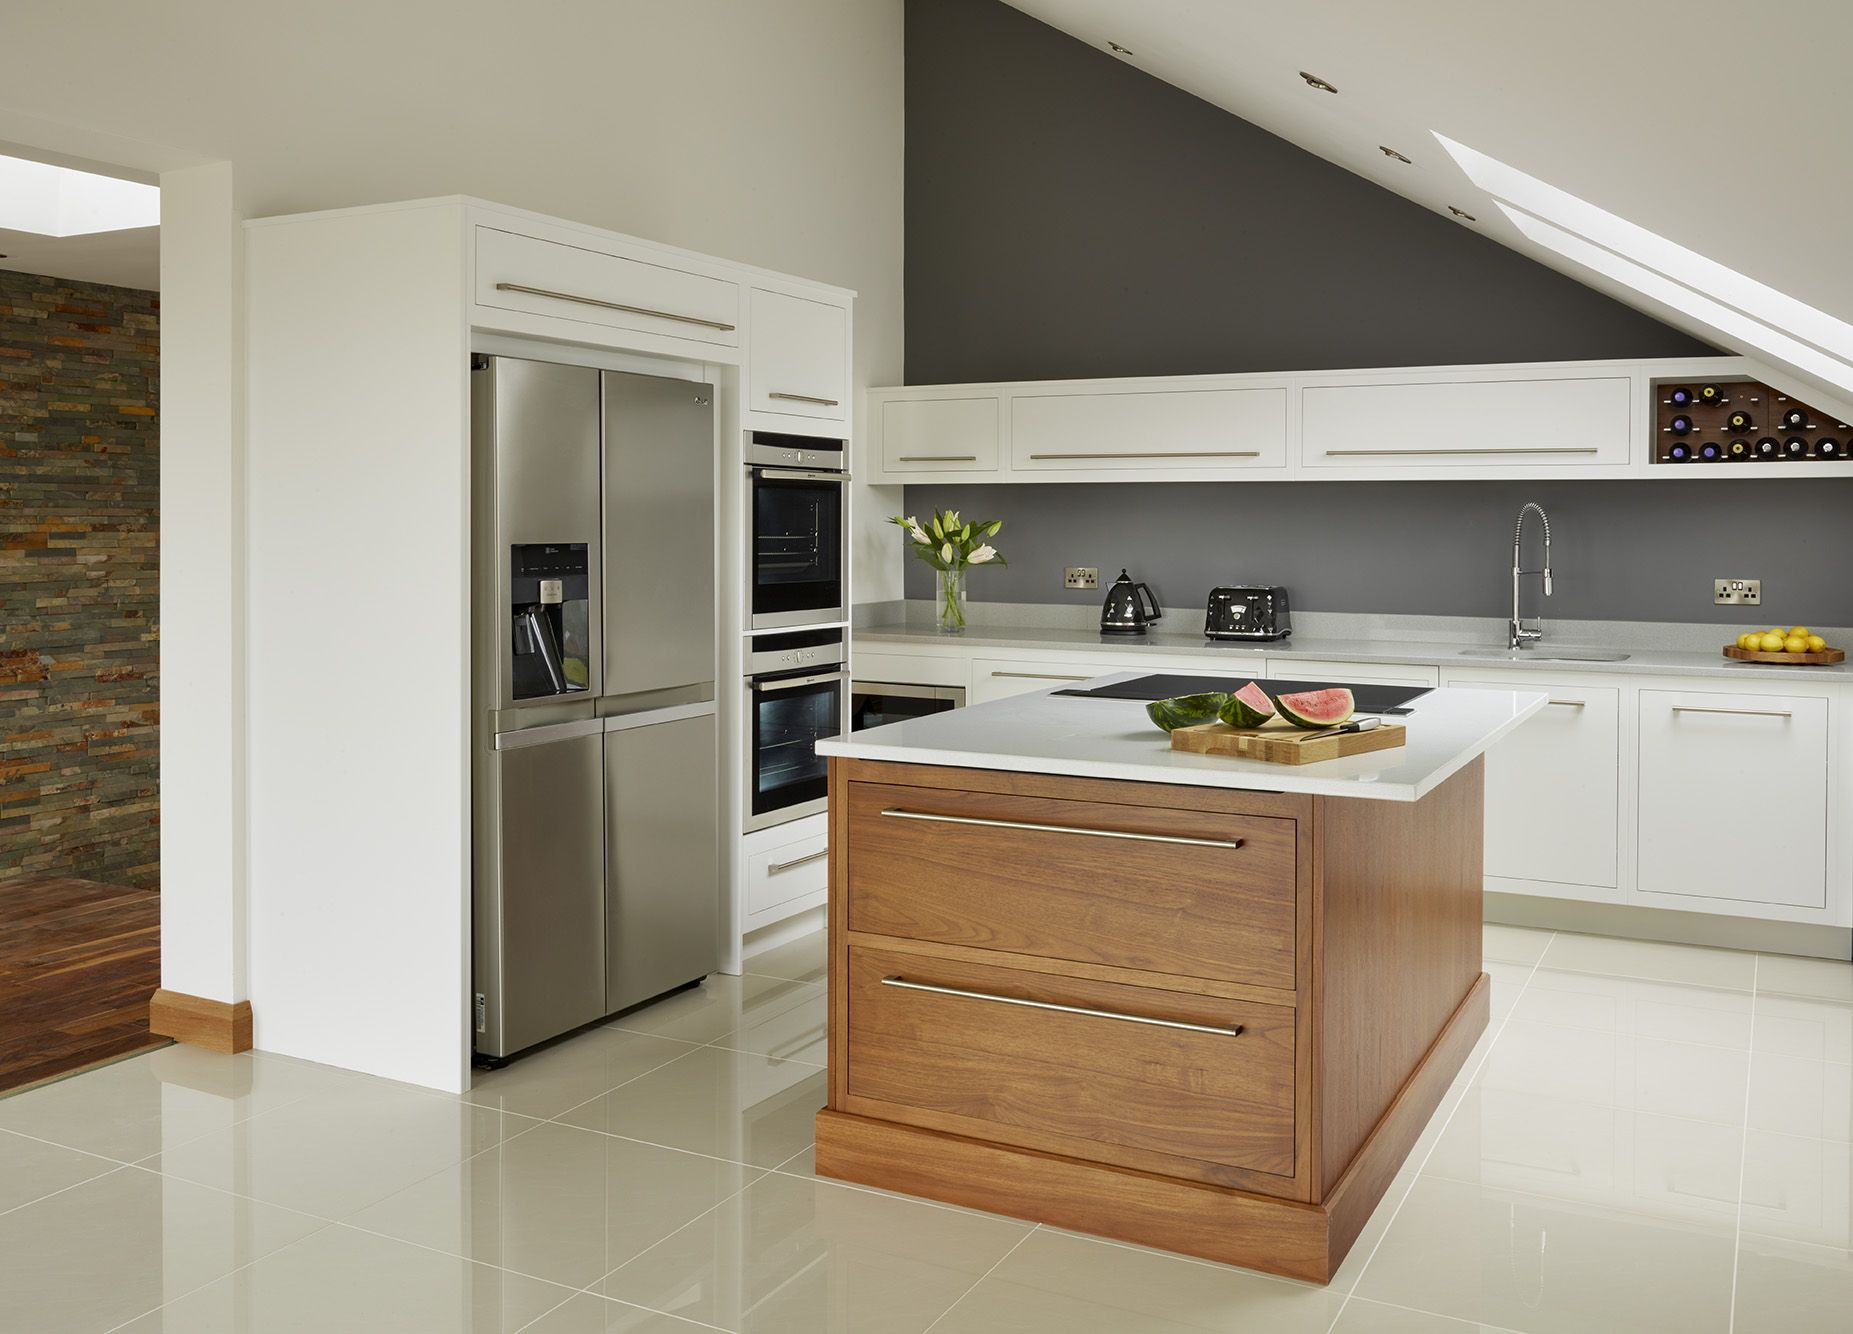 A Harvey Jones Linear Kitchen With Walnut Island Kitchens Kitchendesign Bespoke Handmade